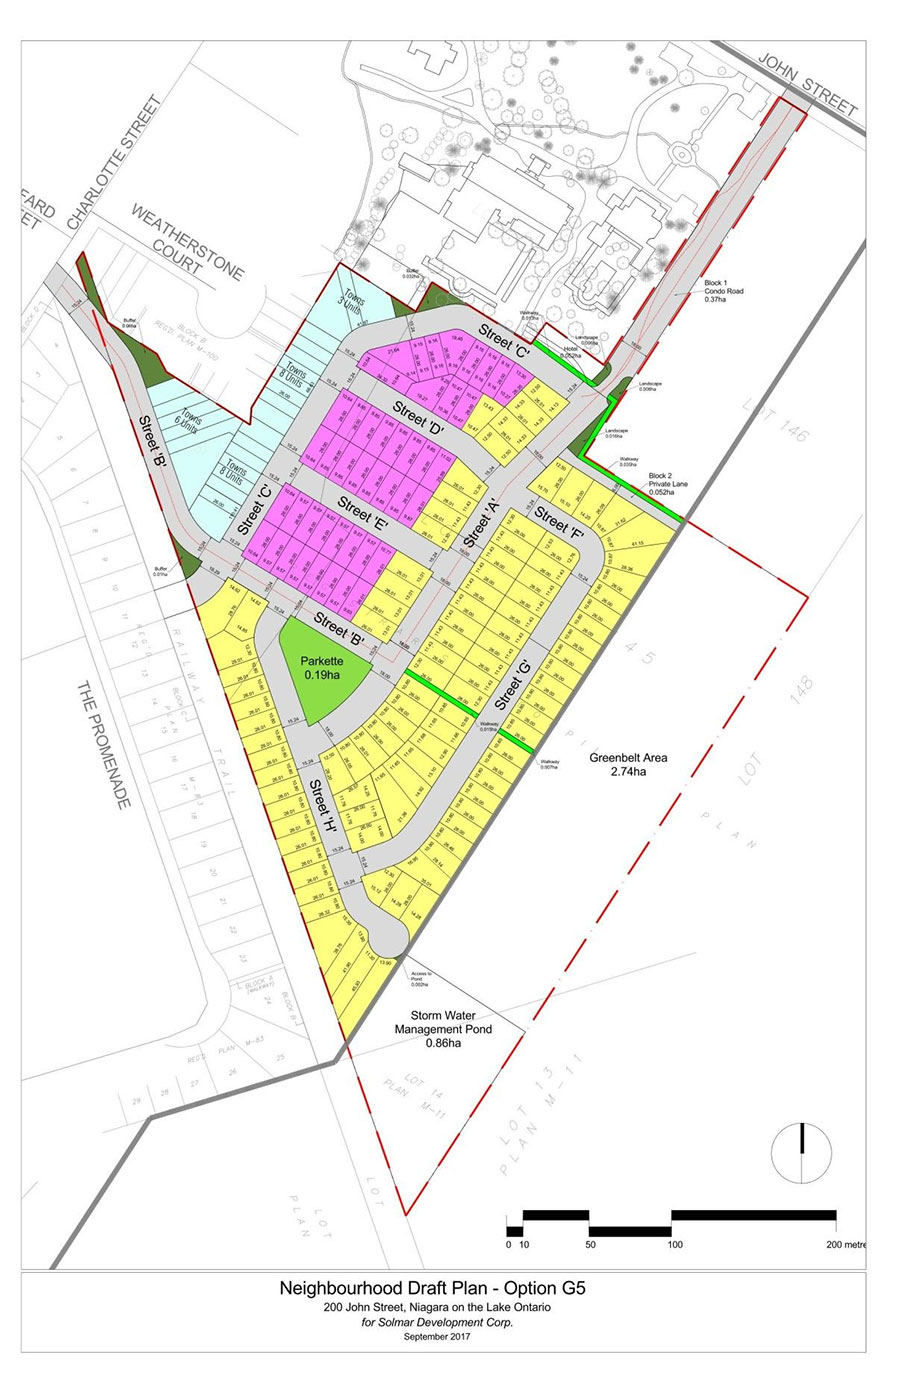 Solmar subdivision plan for 200 John Street in Niagara on the Lake